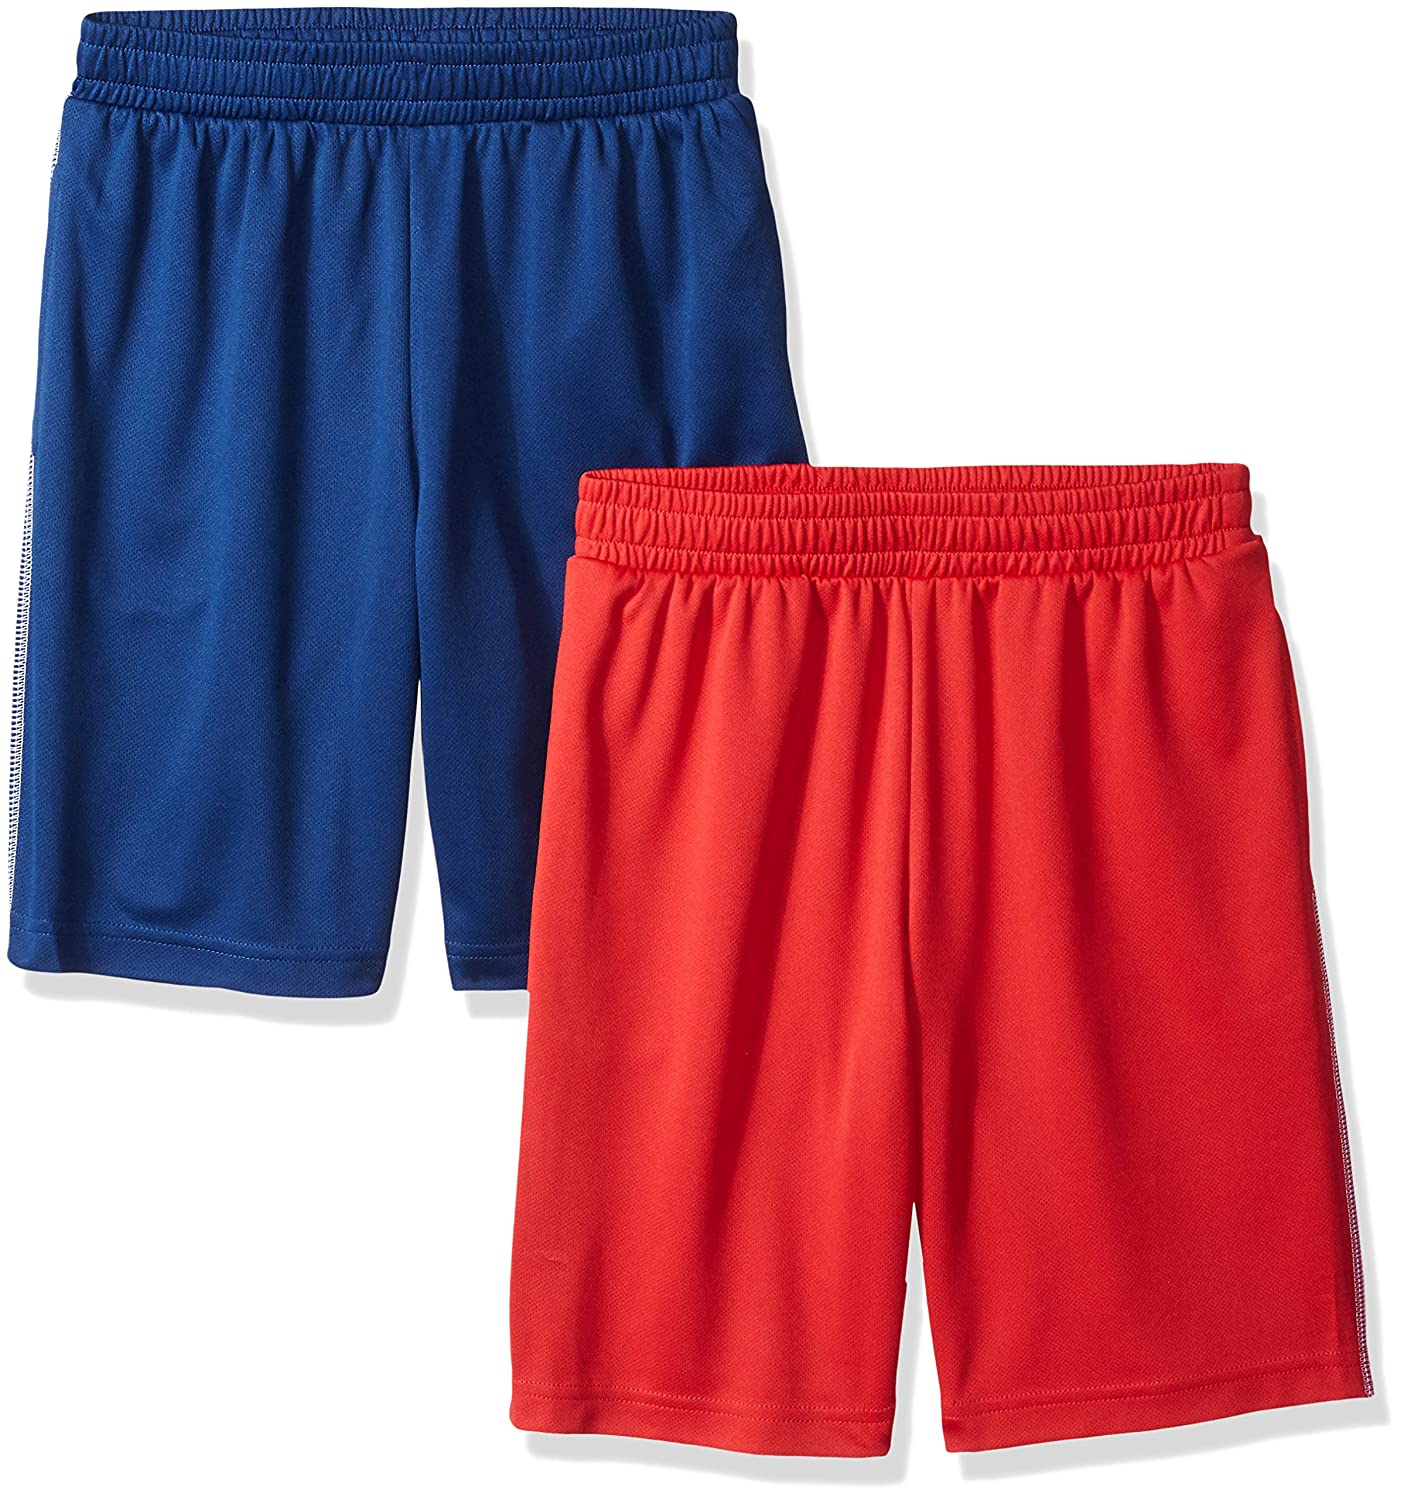 Amazon Essentials Boys Boys' 2-Pack Mesh Short BAE60047FL18